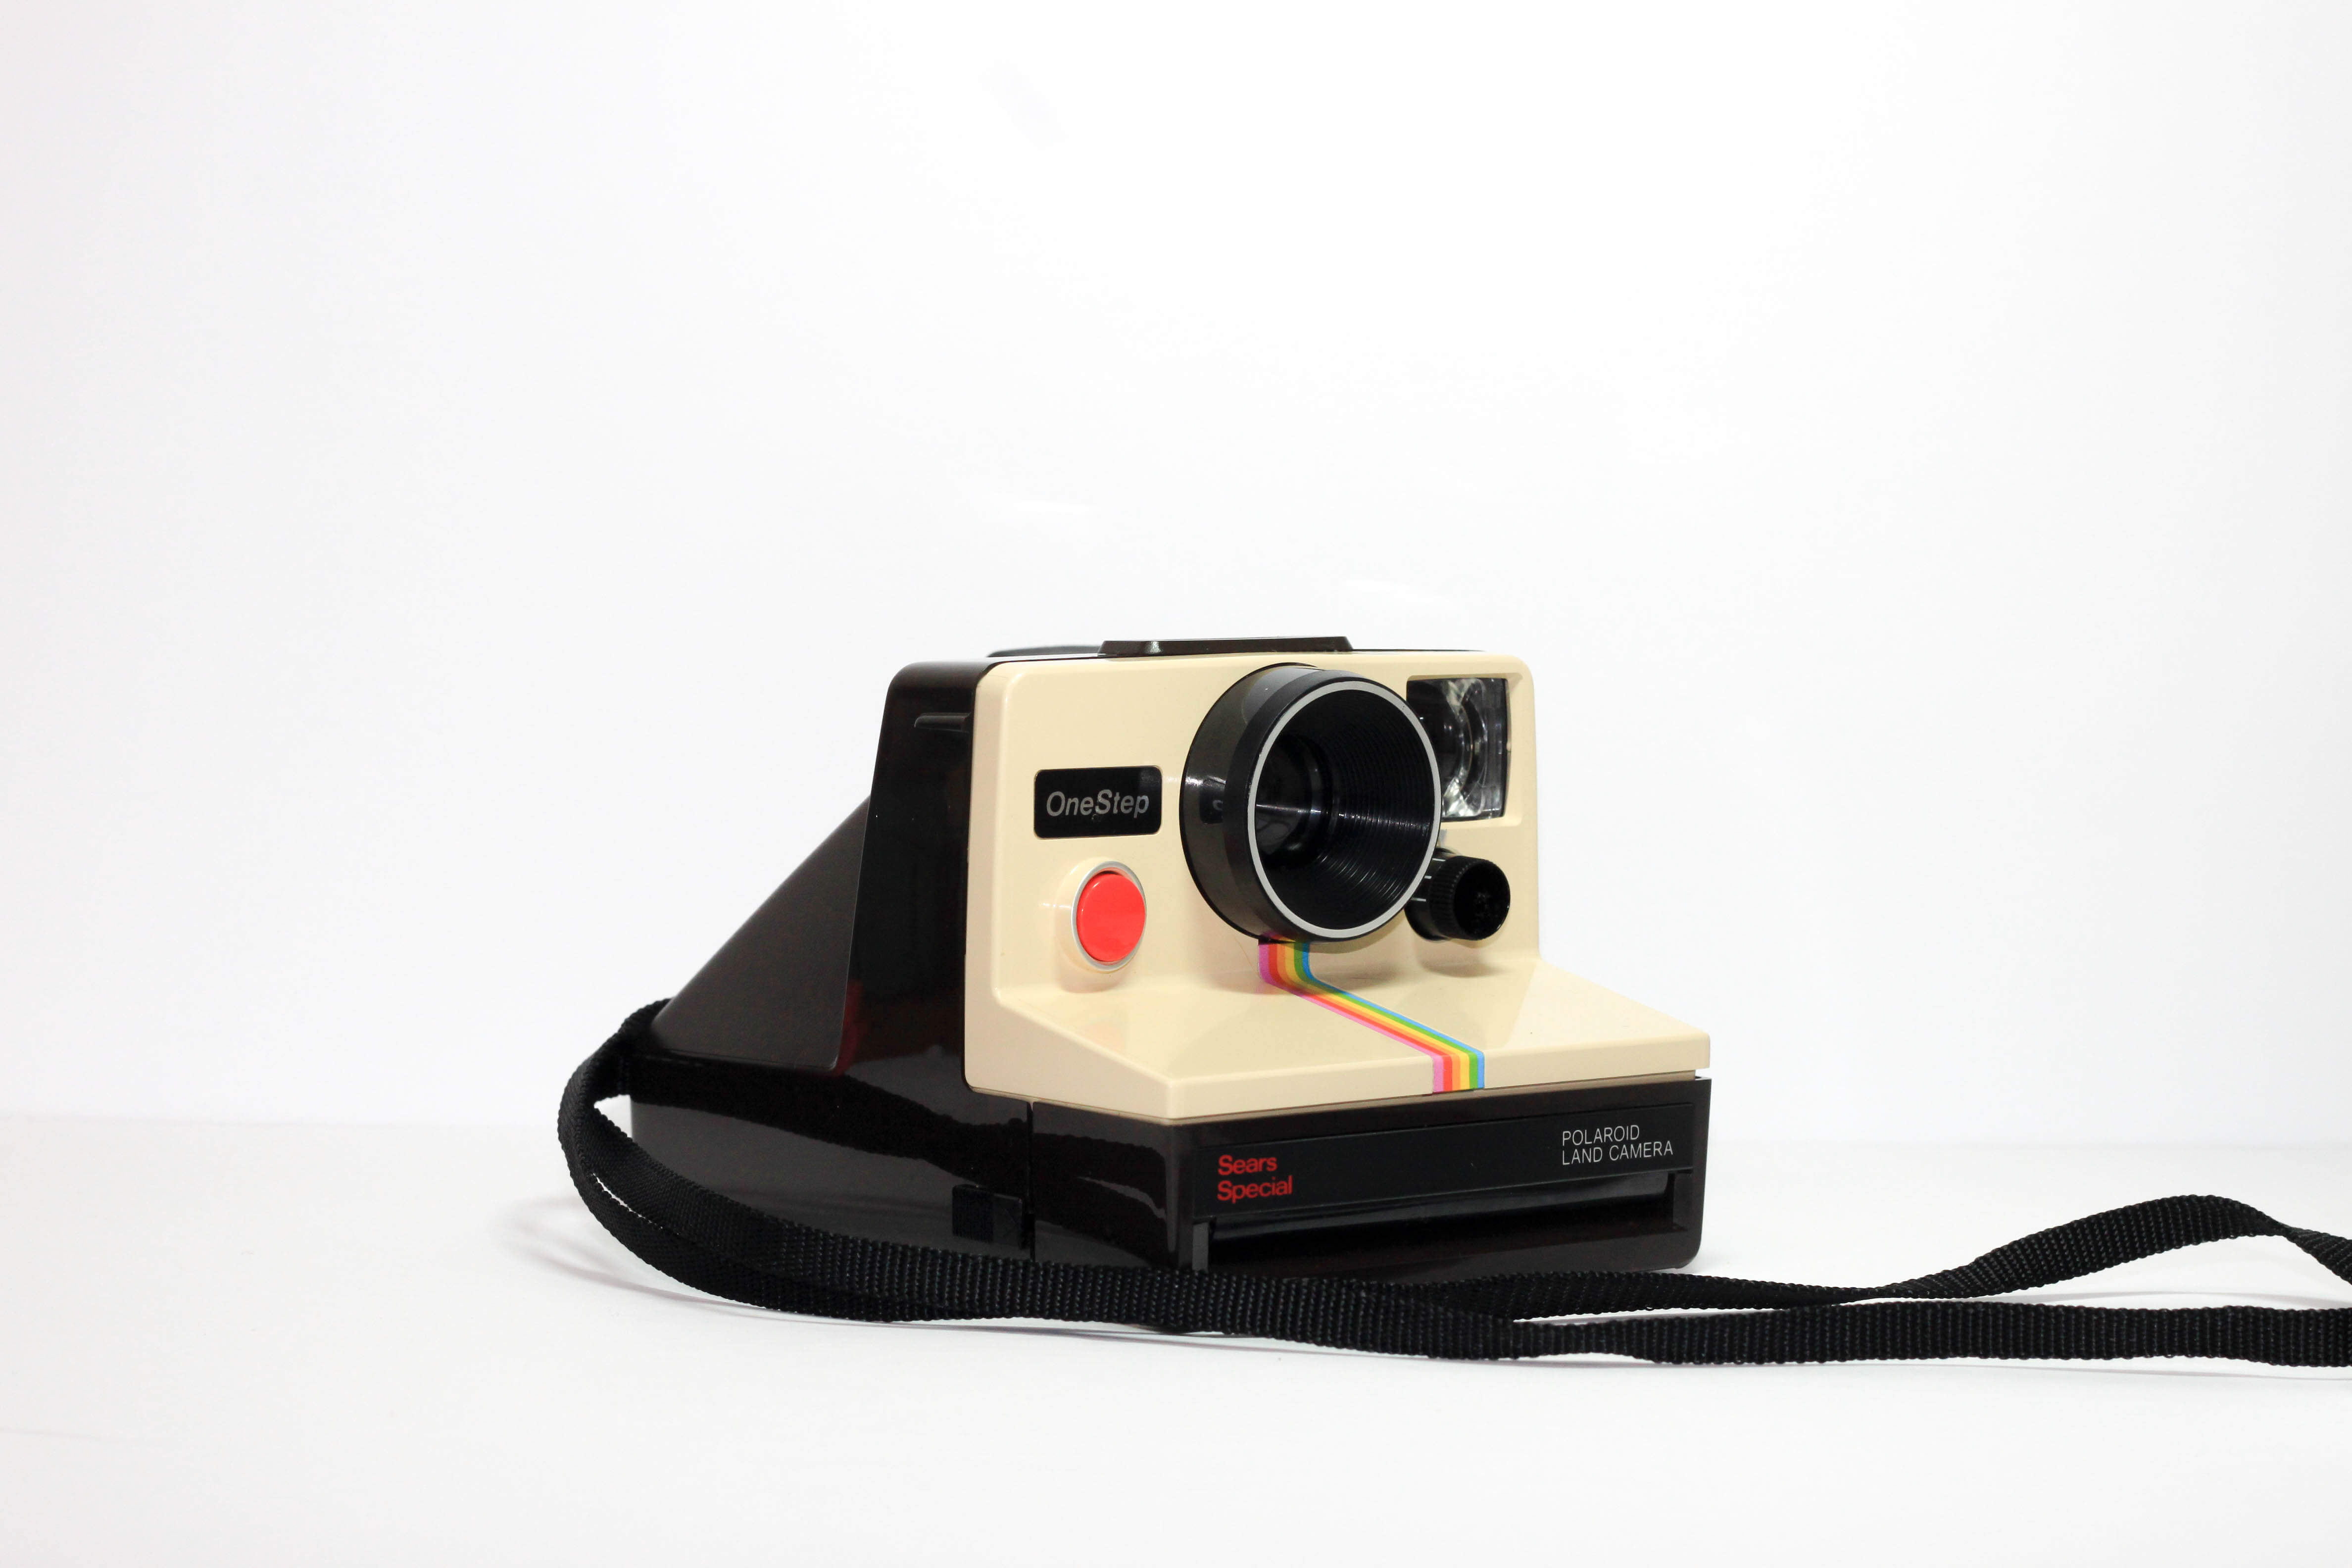 Polaroid One Step Sears Special - Refurbished SX-70